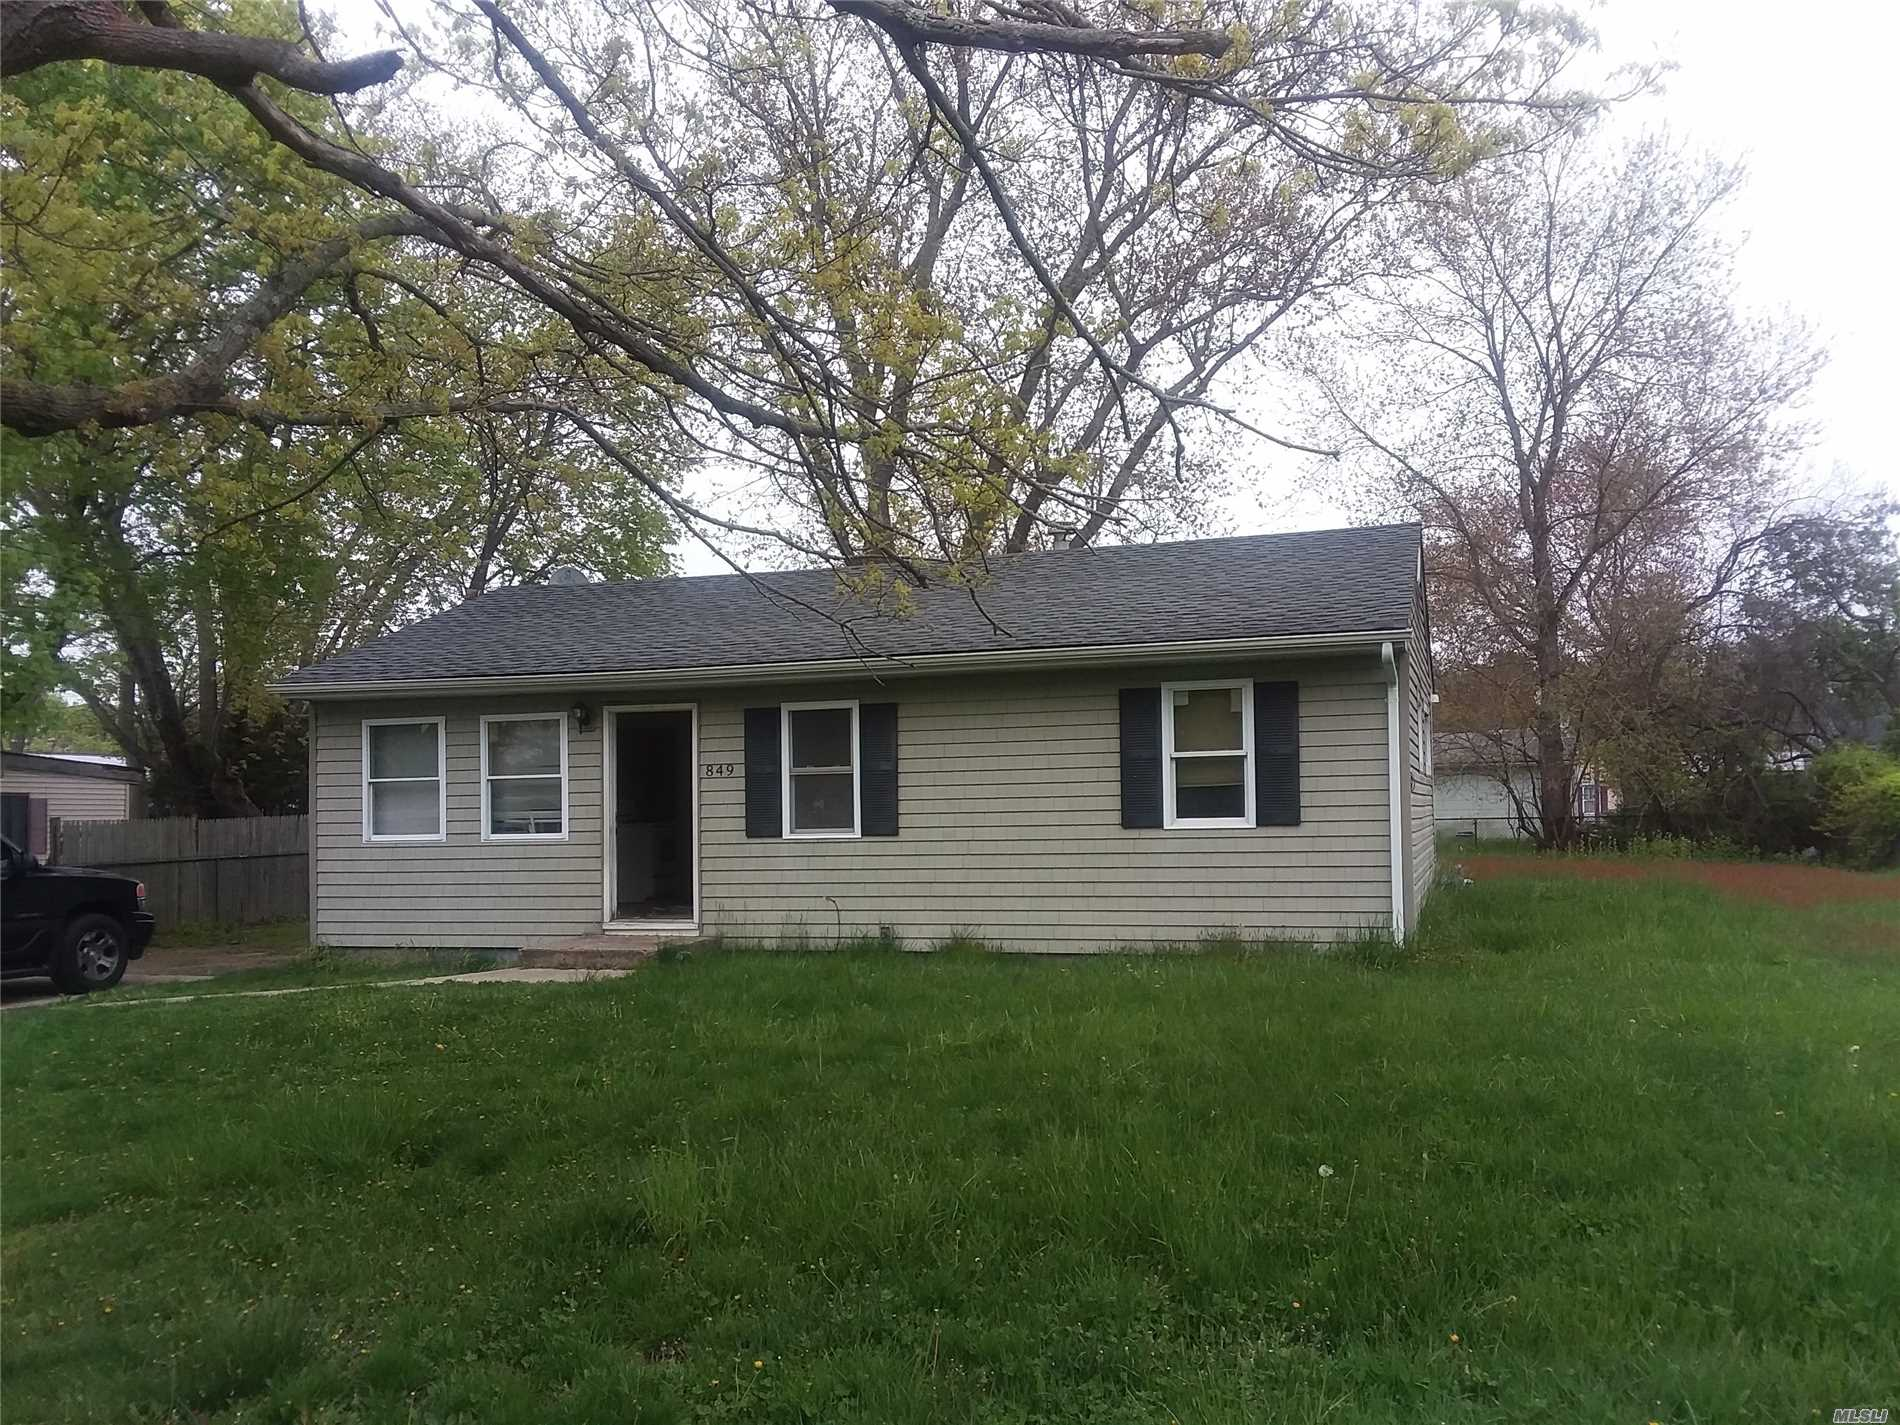 Newly rennovated 3 Bedroom, 1 Bath Ranch for rent. Brand new Kitchen and appliances, New Carpets all throughout. Max. allowable occupancy of 3 people as per Town of Brookhaven Rental Permit.